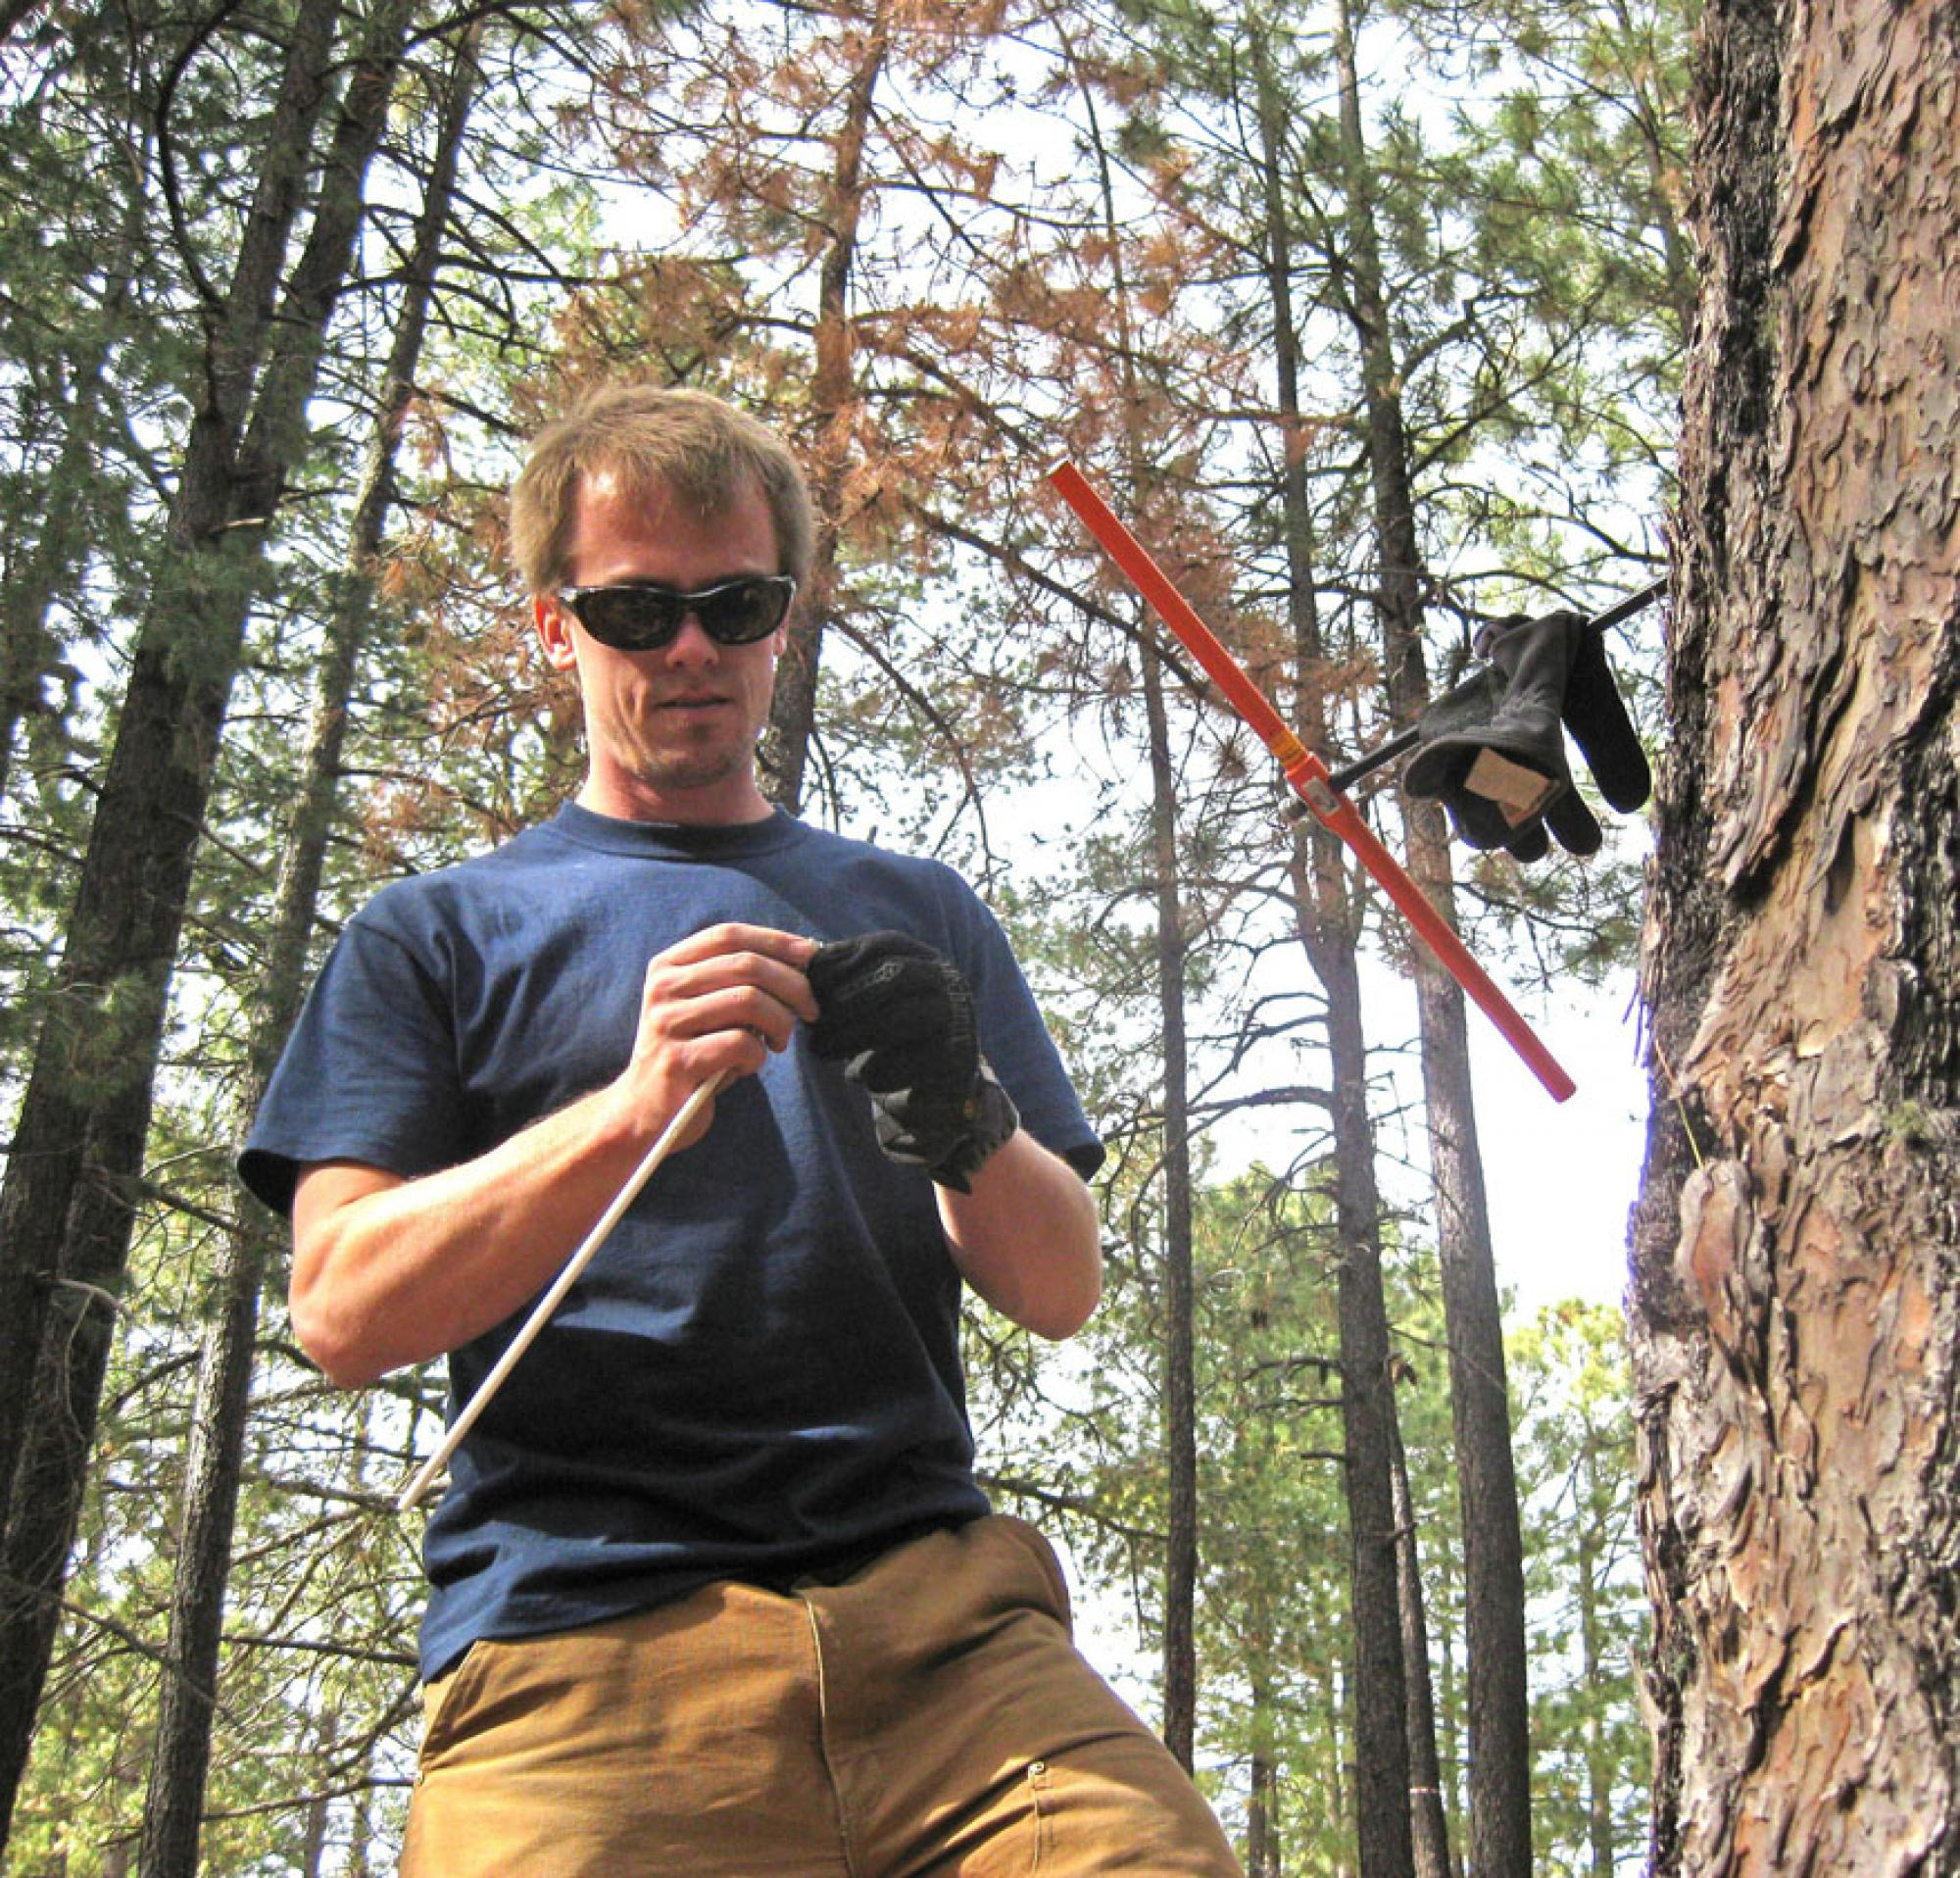 UA tree-ring researcher Daniel Griffin collects a core from the trunk of a ponderosa pine to study the tree's annual growth rings. He measures the width of such rings to study the monsoon rainfall history of the America Southwest.  Scott St. George/Univer